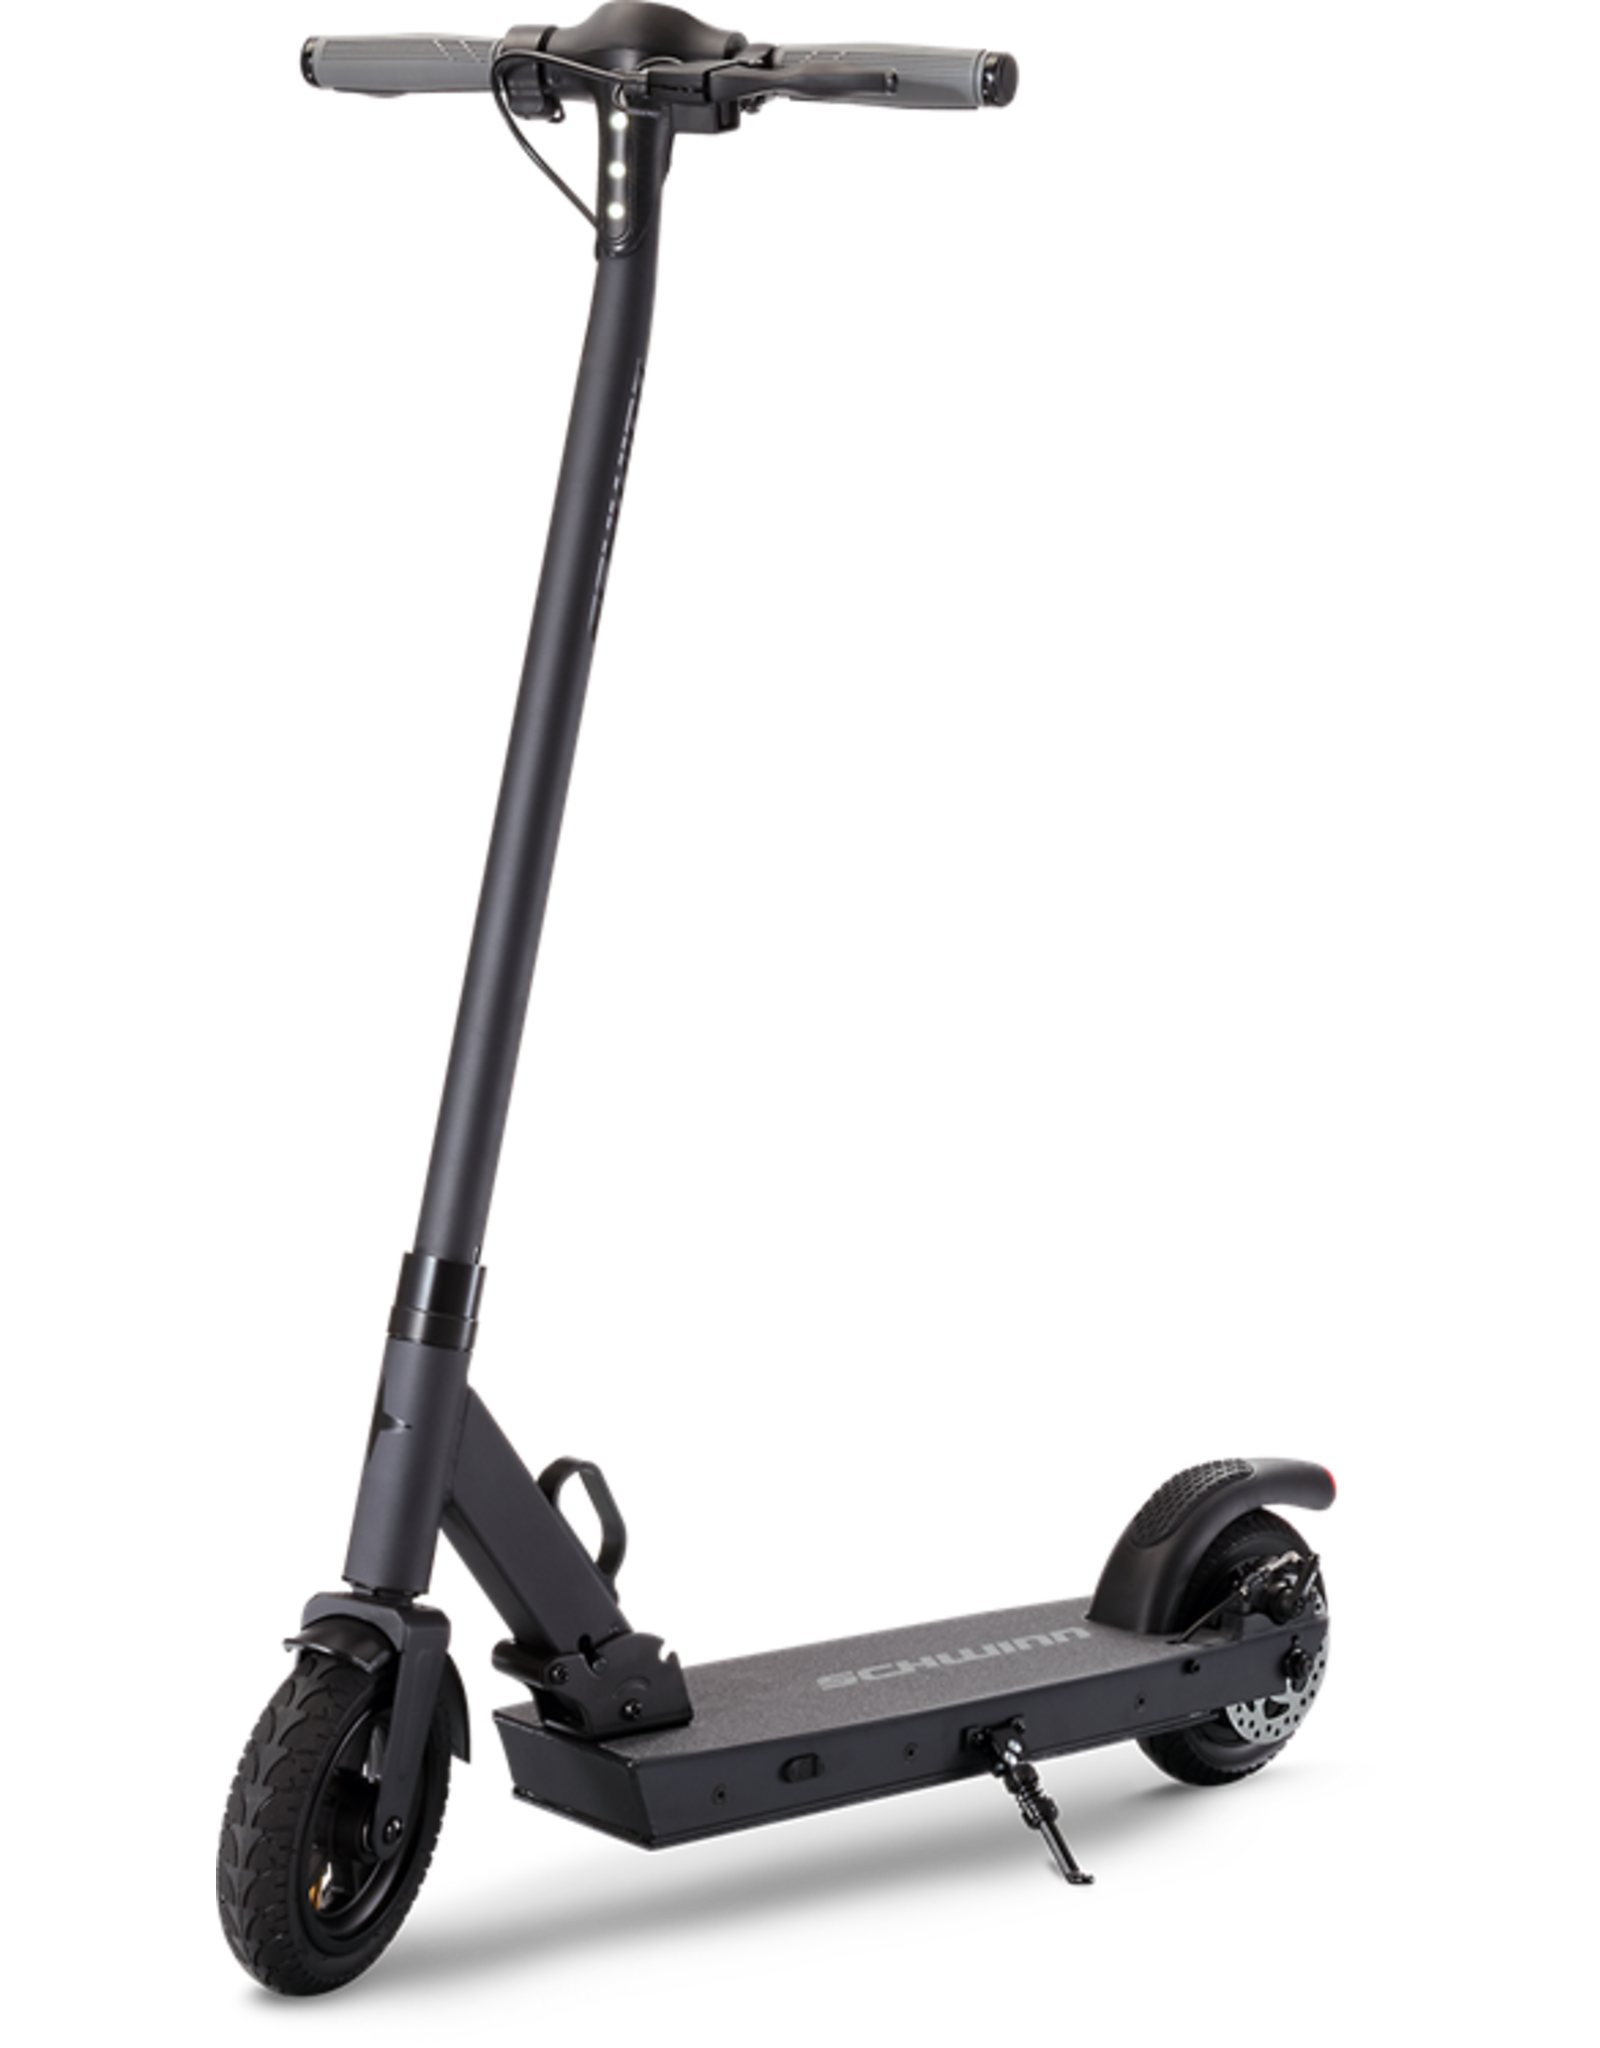 Schwinn Sch Tone 1 Electric Scooter Black